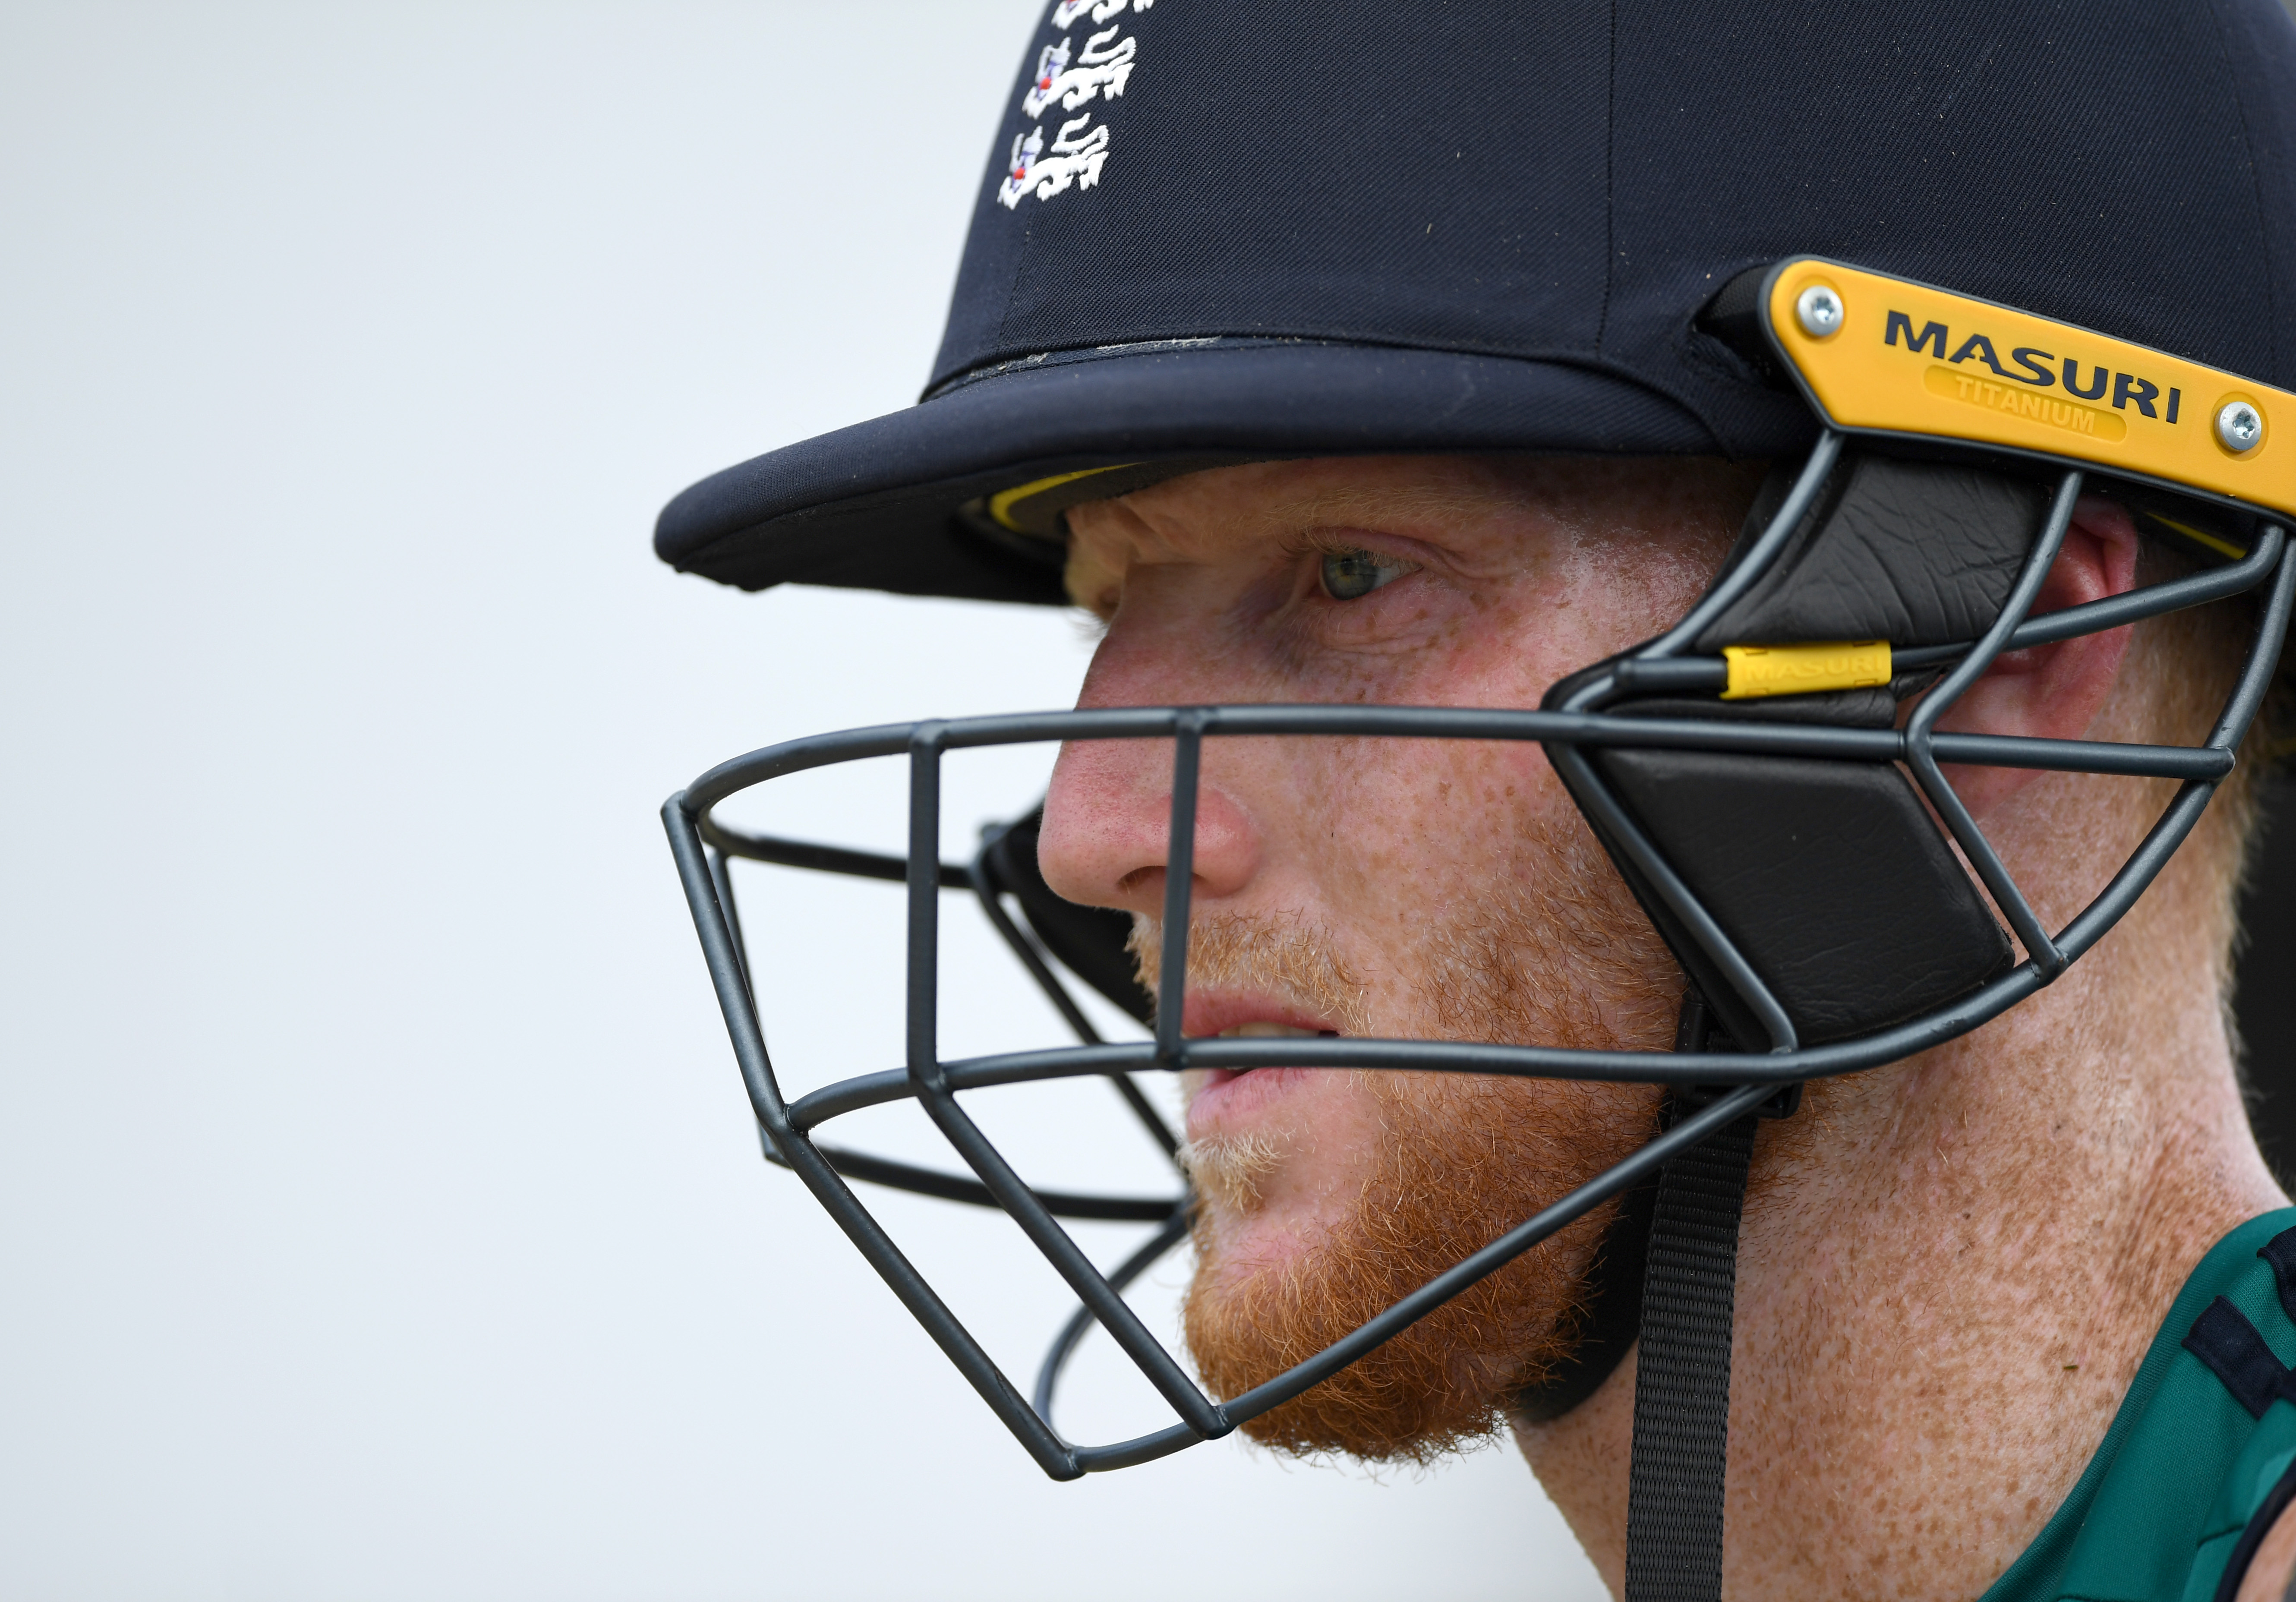 England star Ben Stokes will become 'massive global superstar' in Indian Premier League – Eoin Morgan